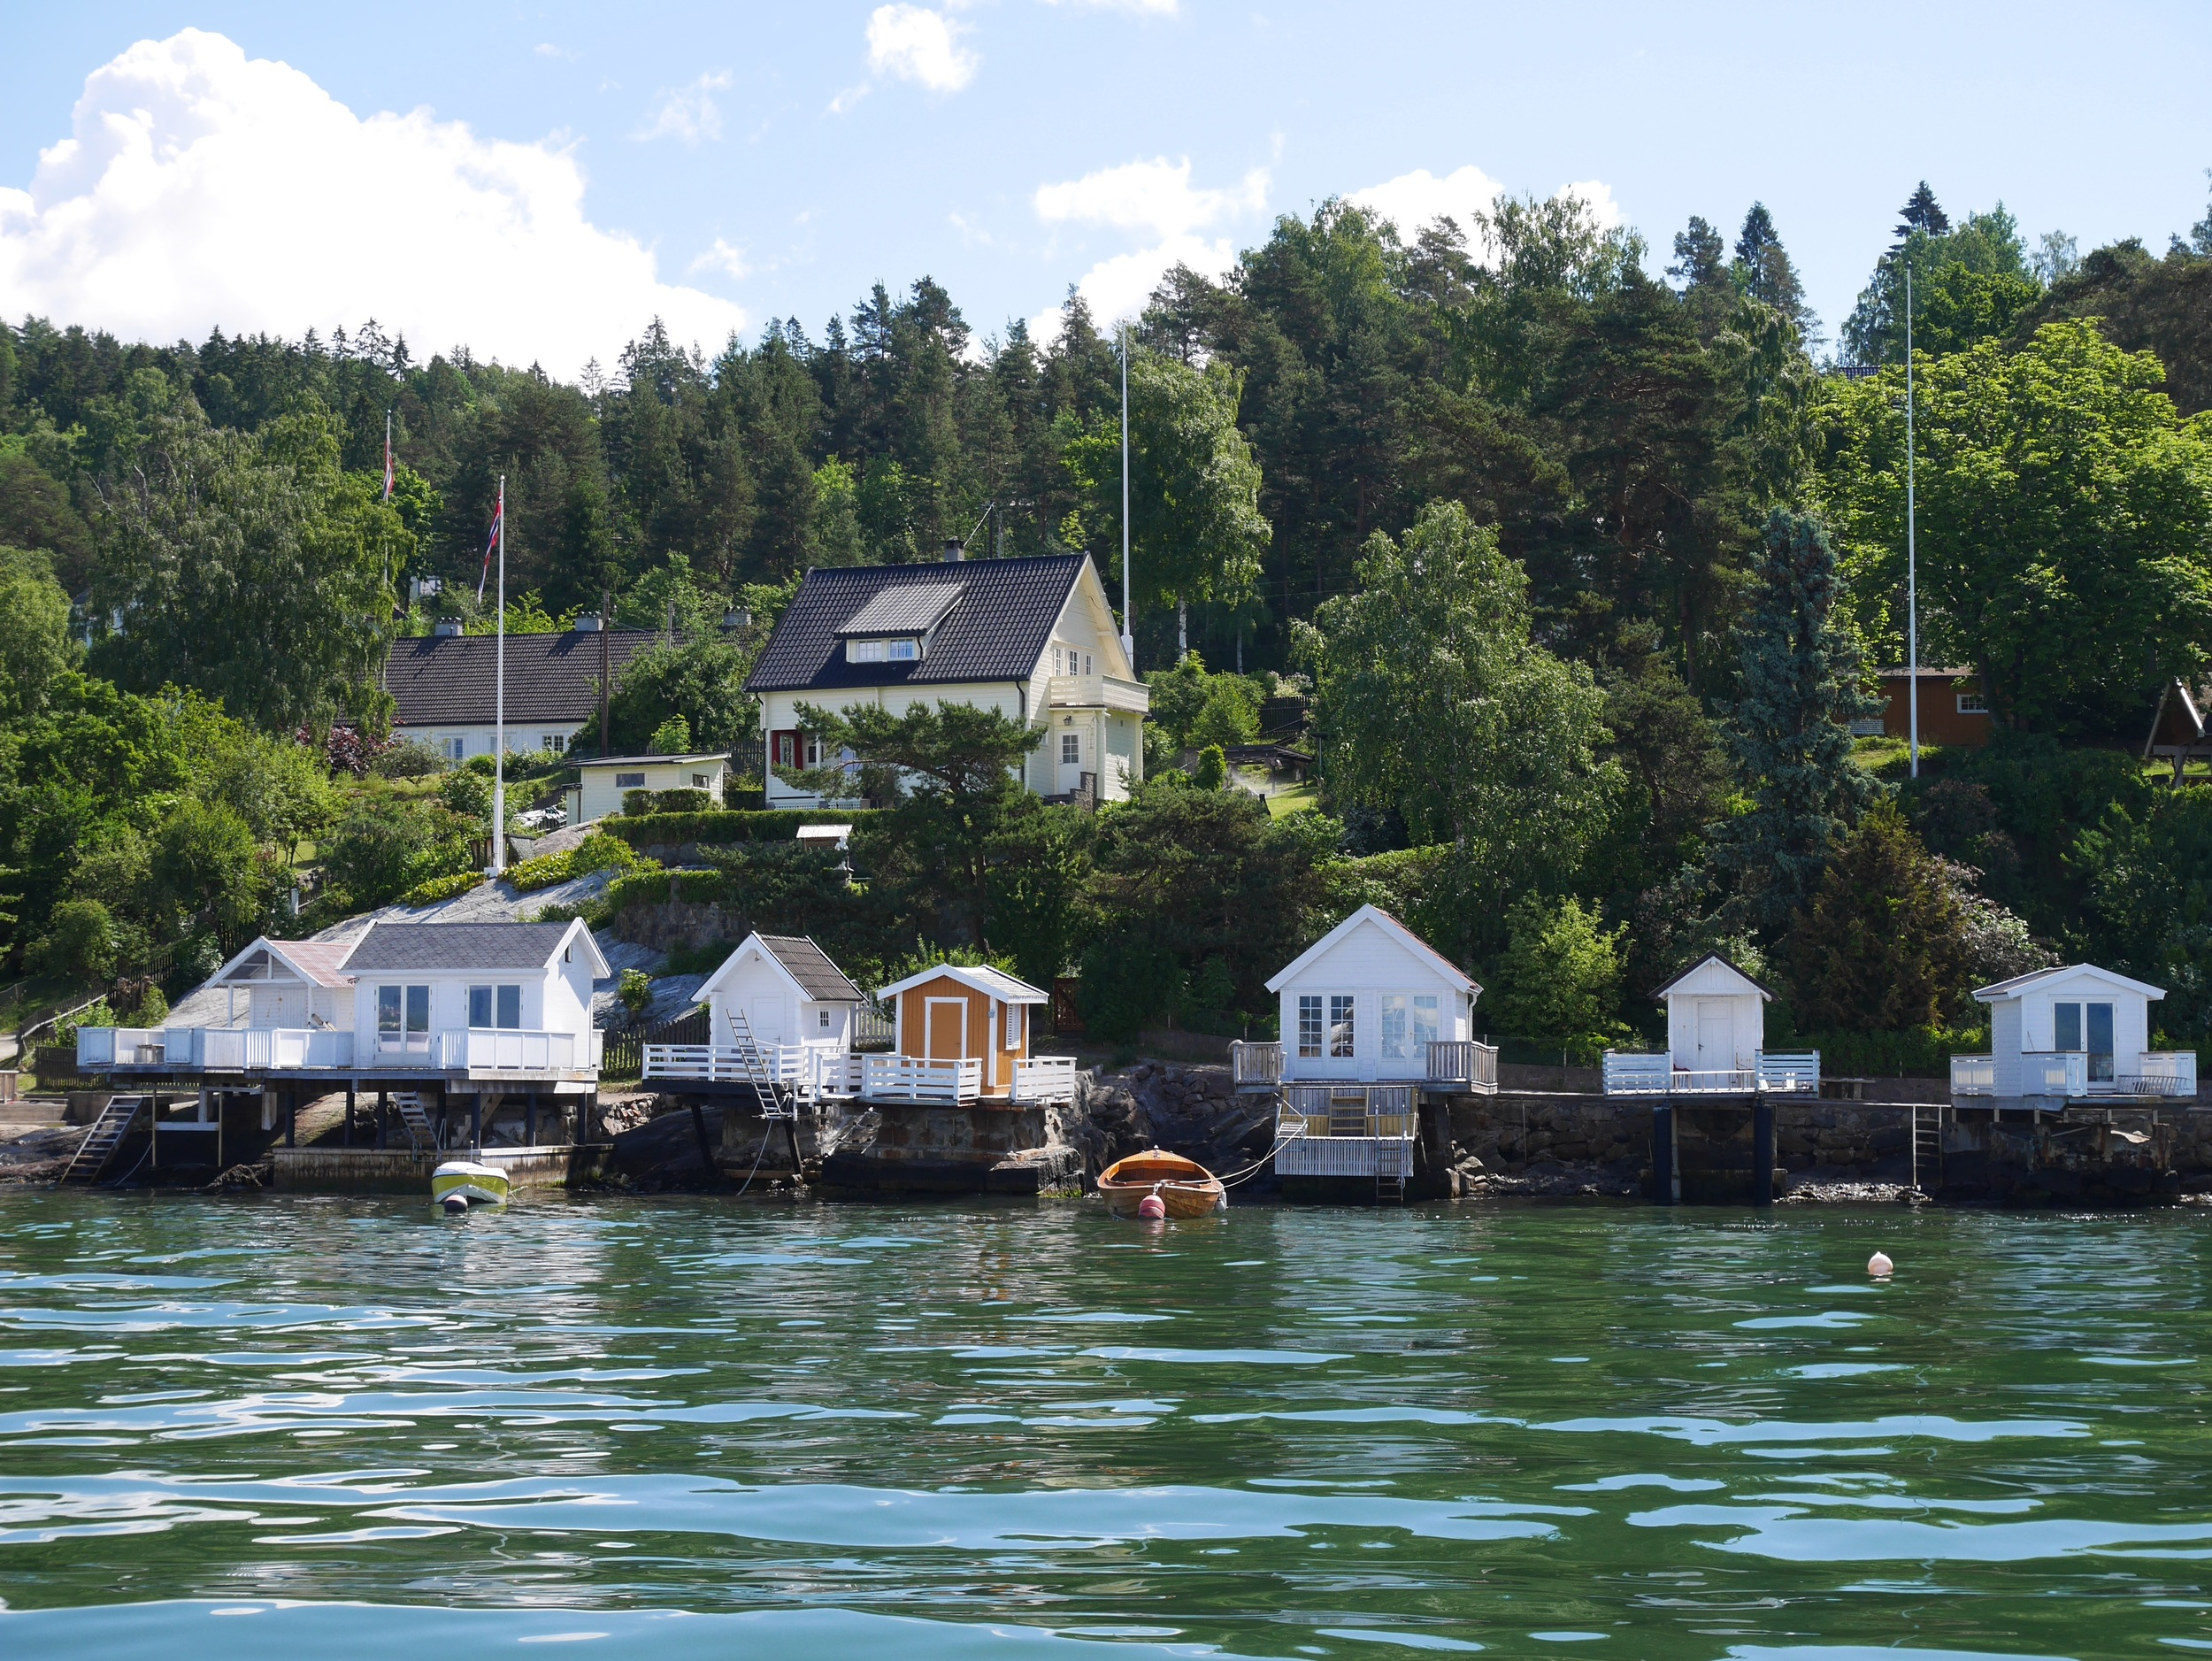 Oslo Fjord dock houses